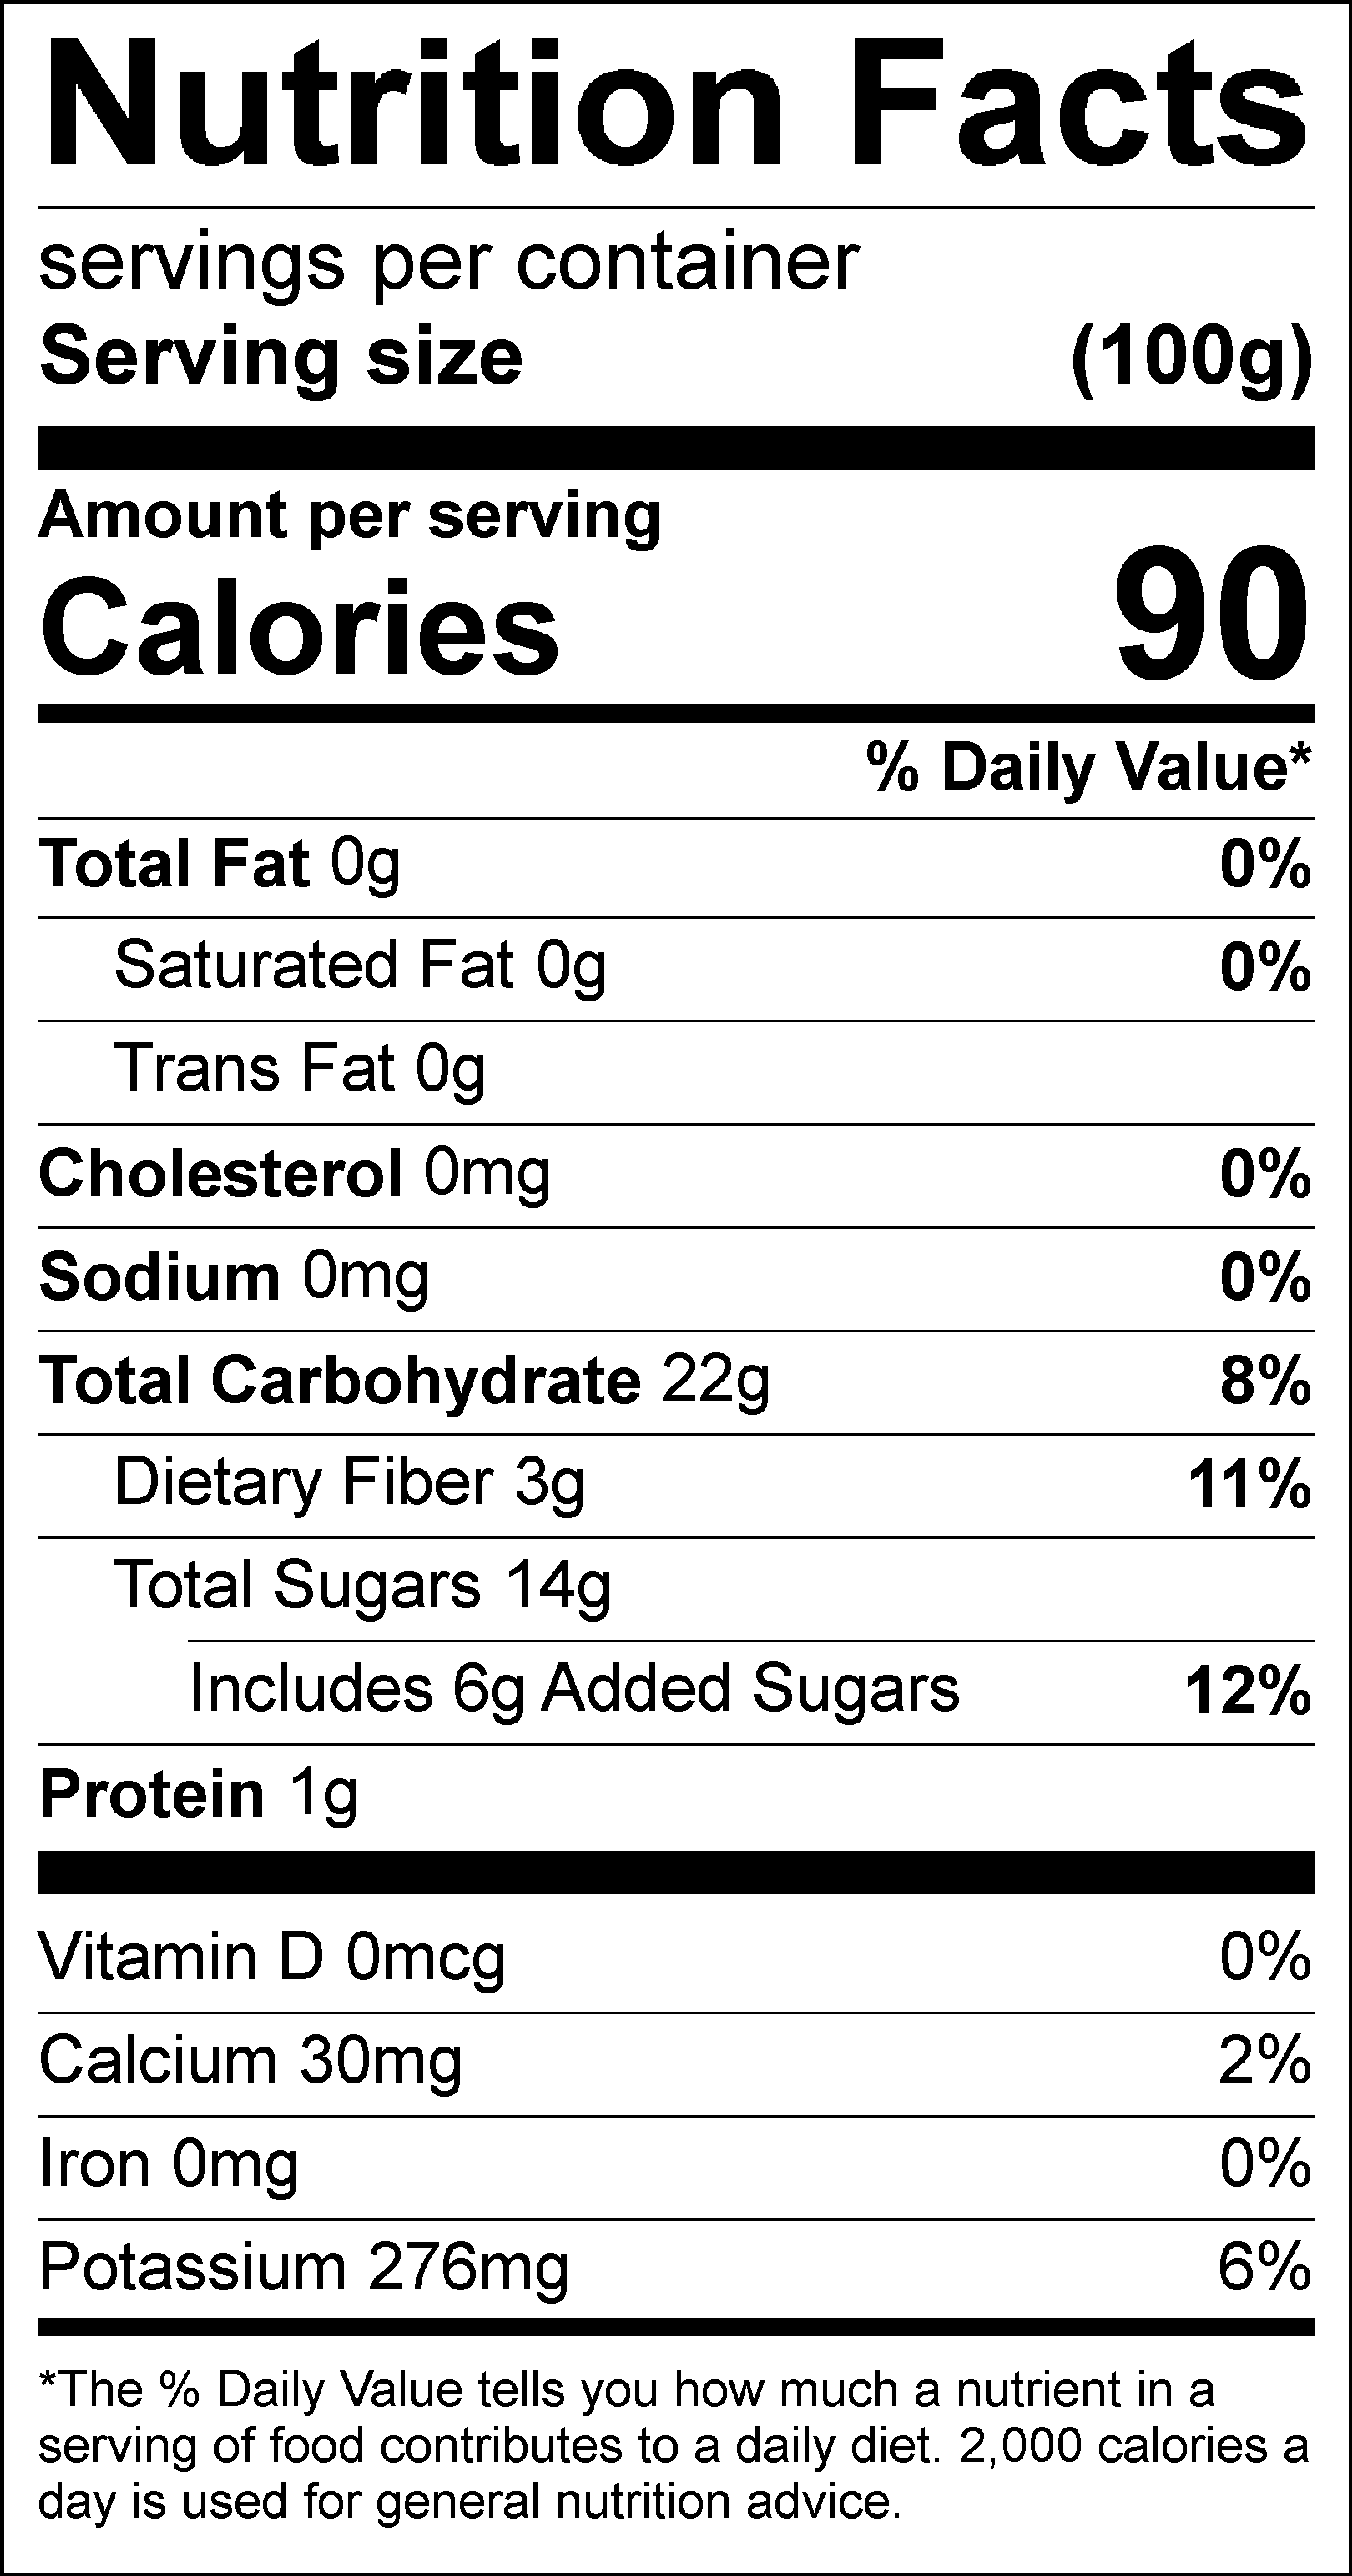 Kiwi Puree Pastry Star Nutrition Facts Nutrition Sugar Free Syrup